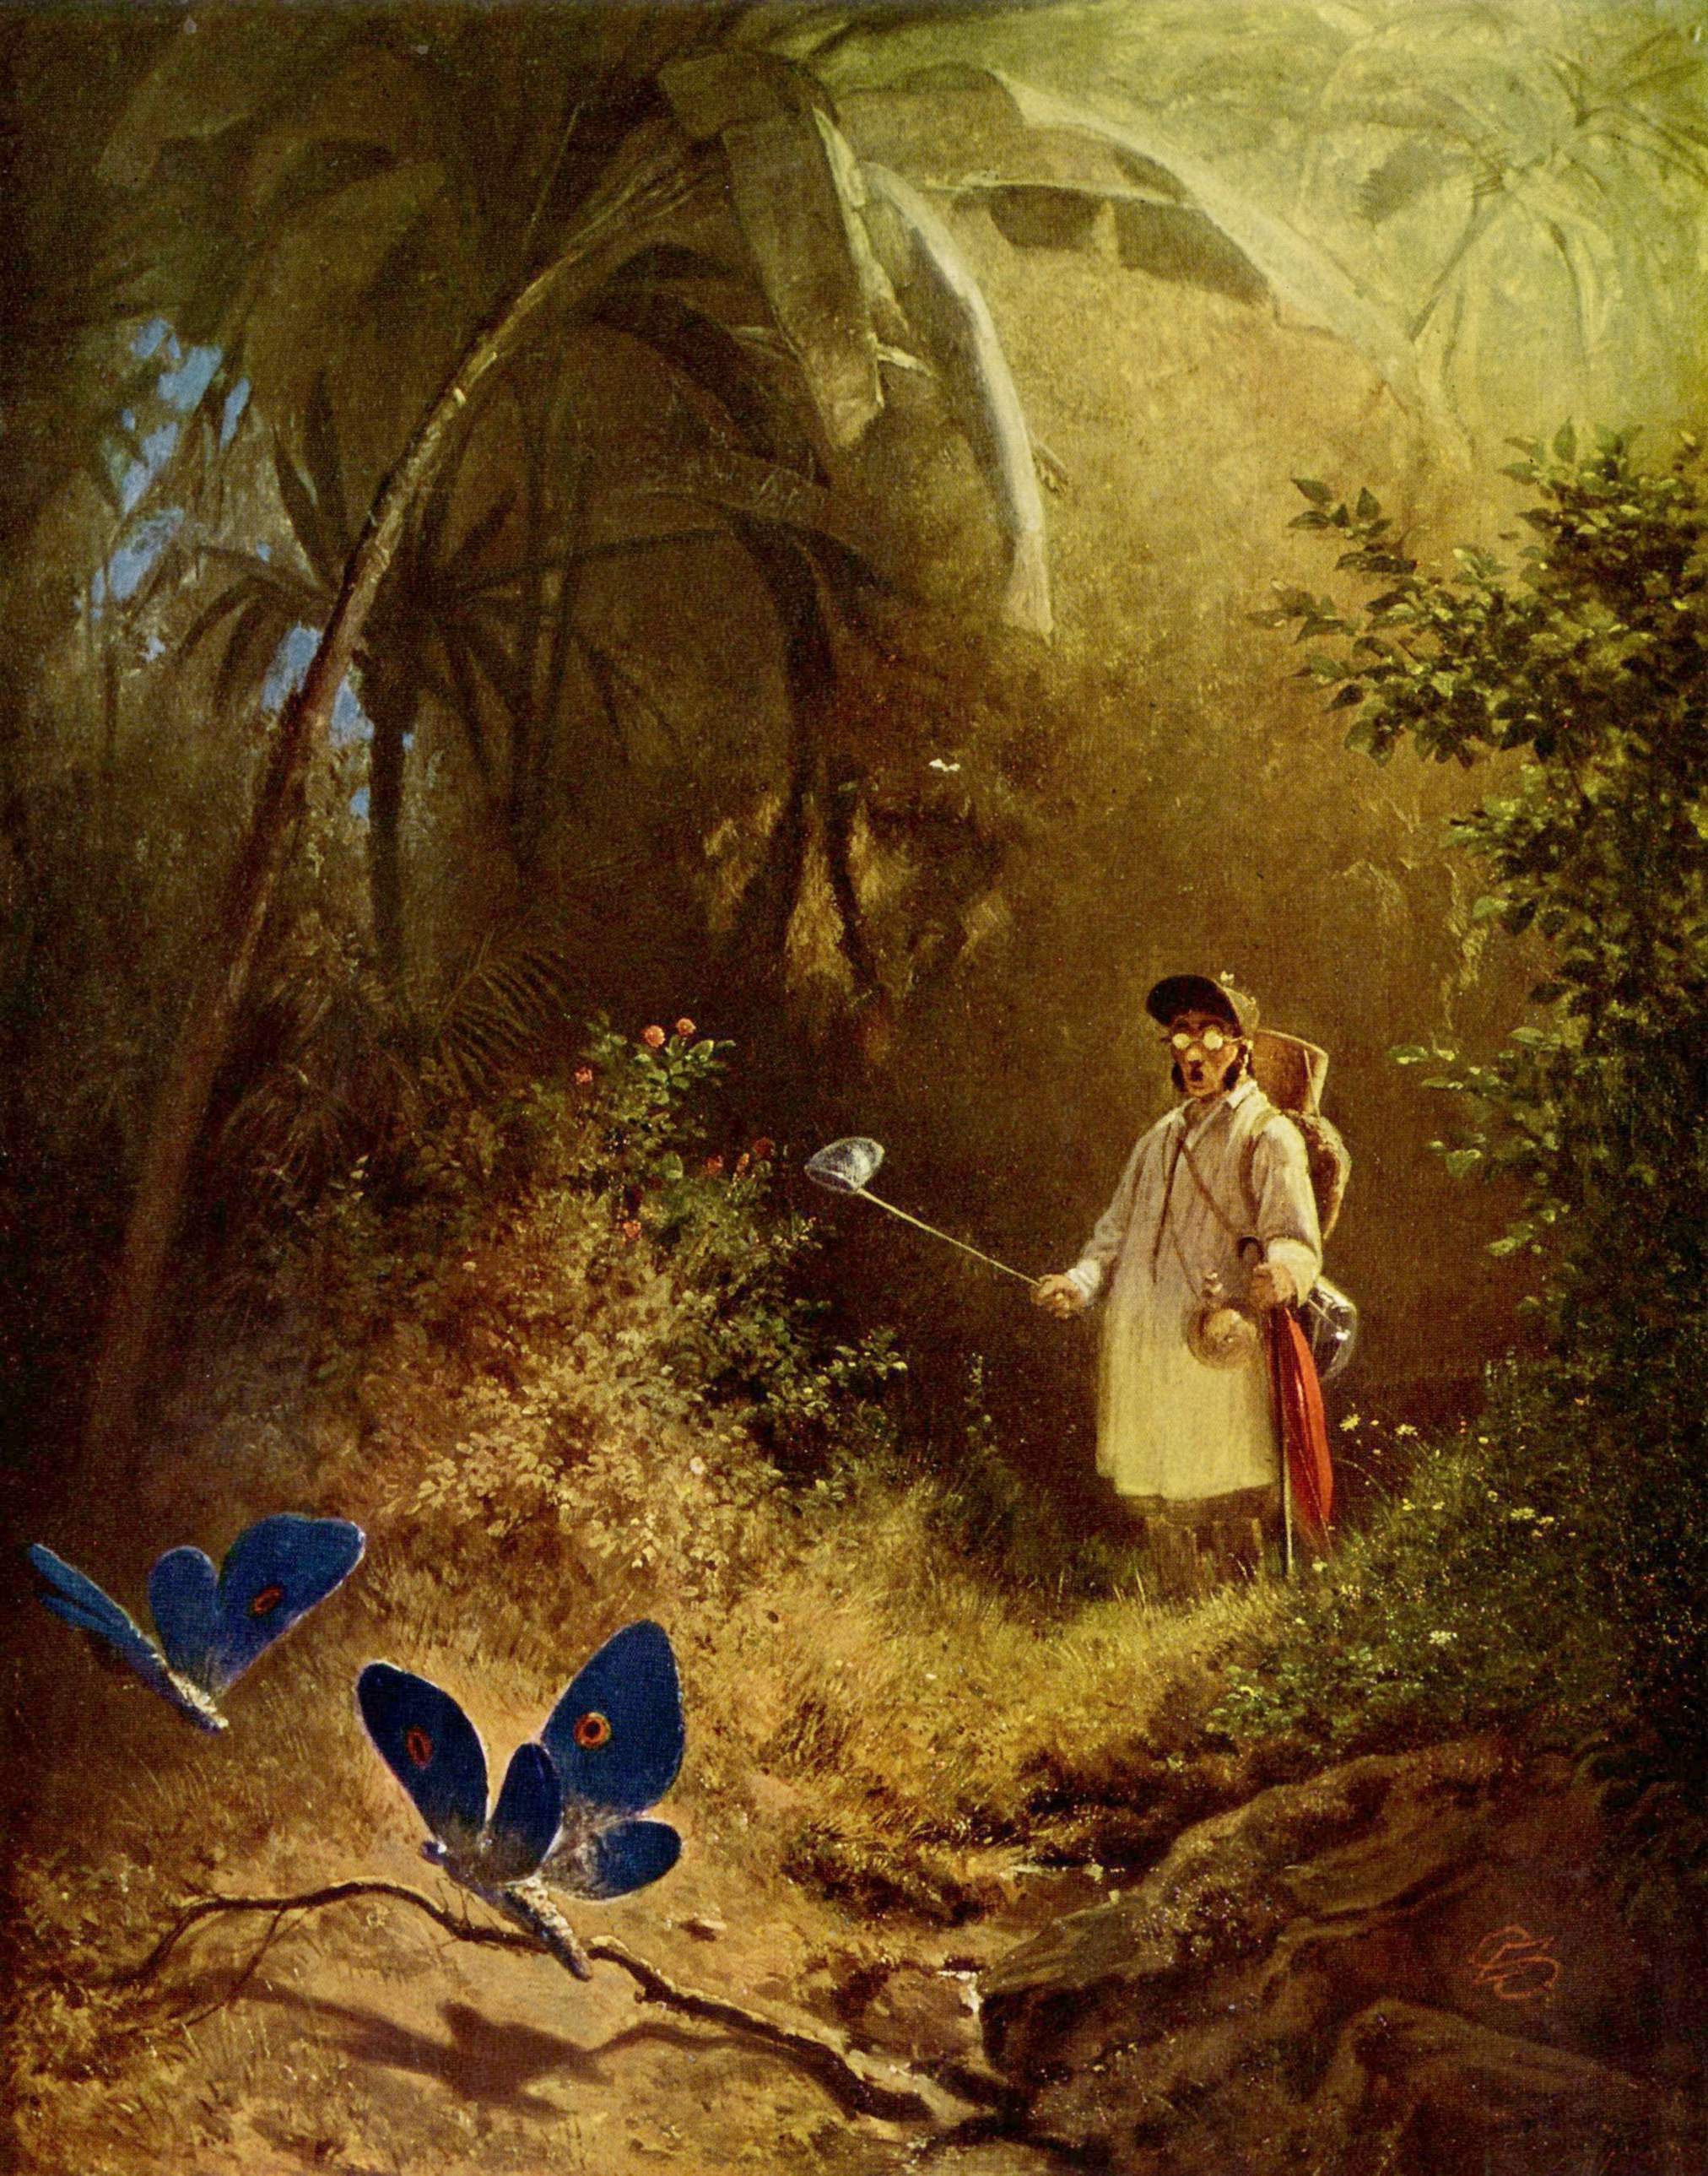 The Butterfly Hunter Art image - Free stock photo - Public